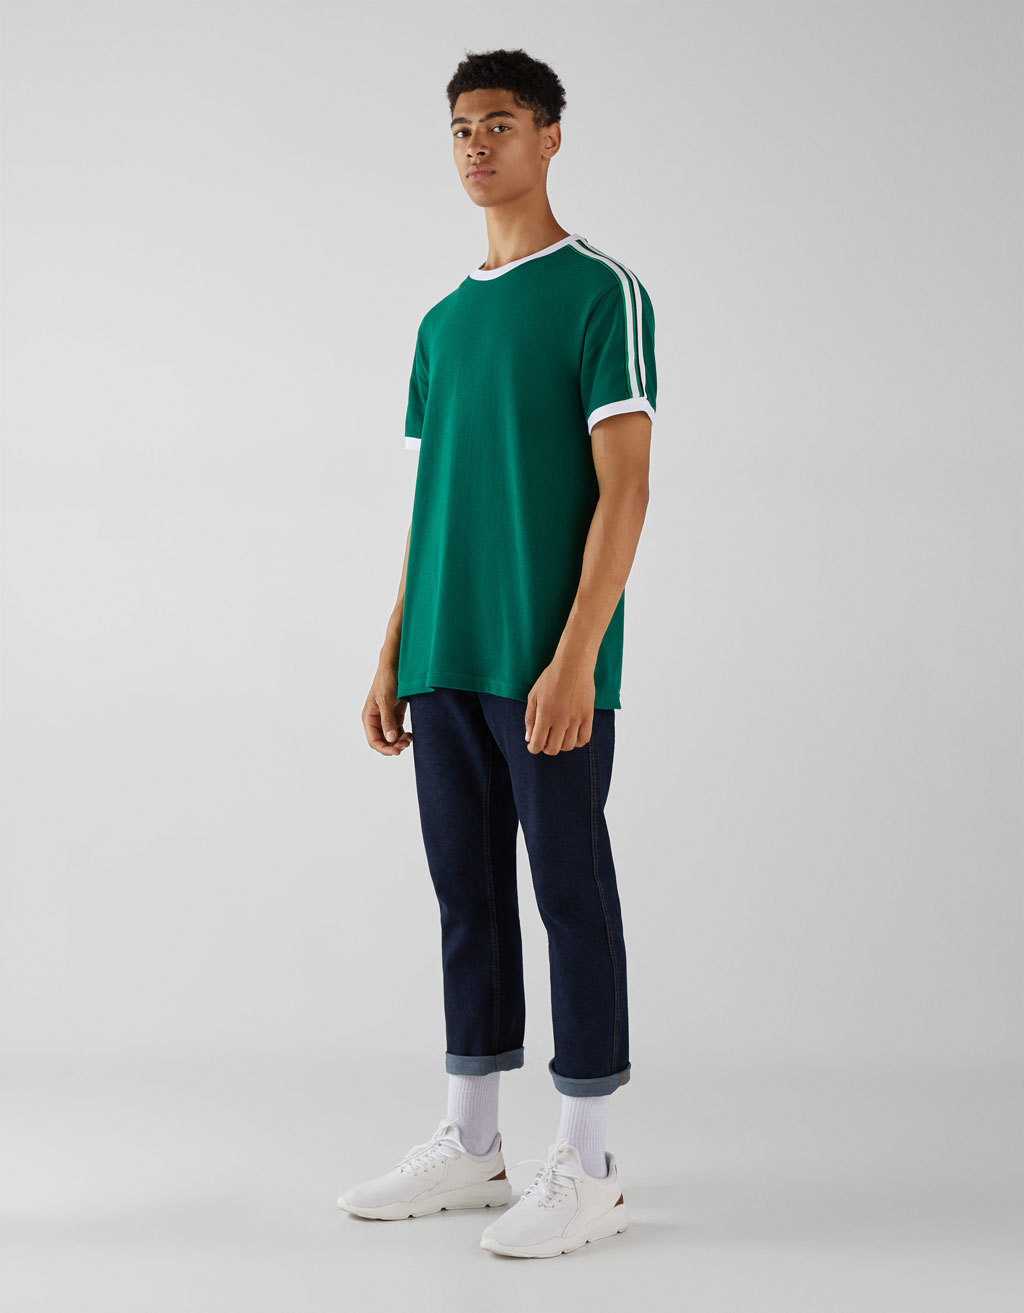 T-shirt with side stripes